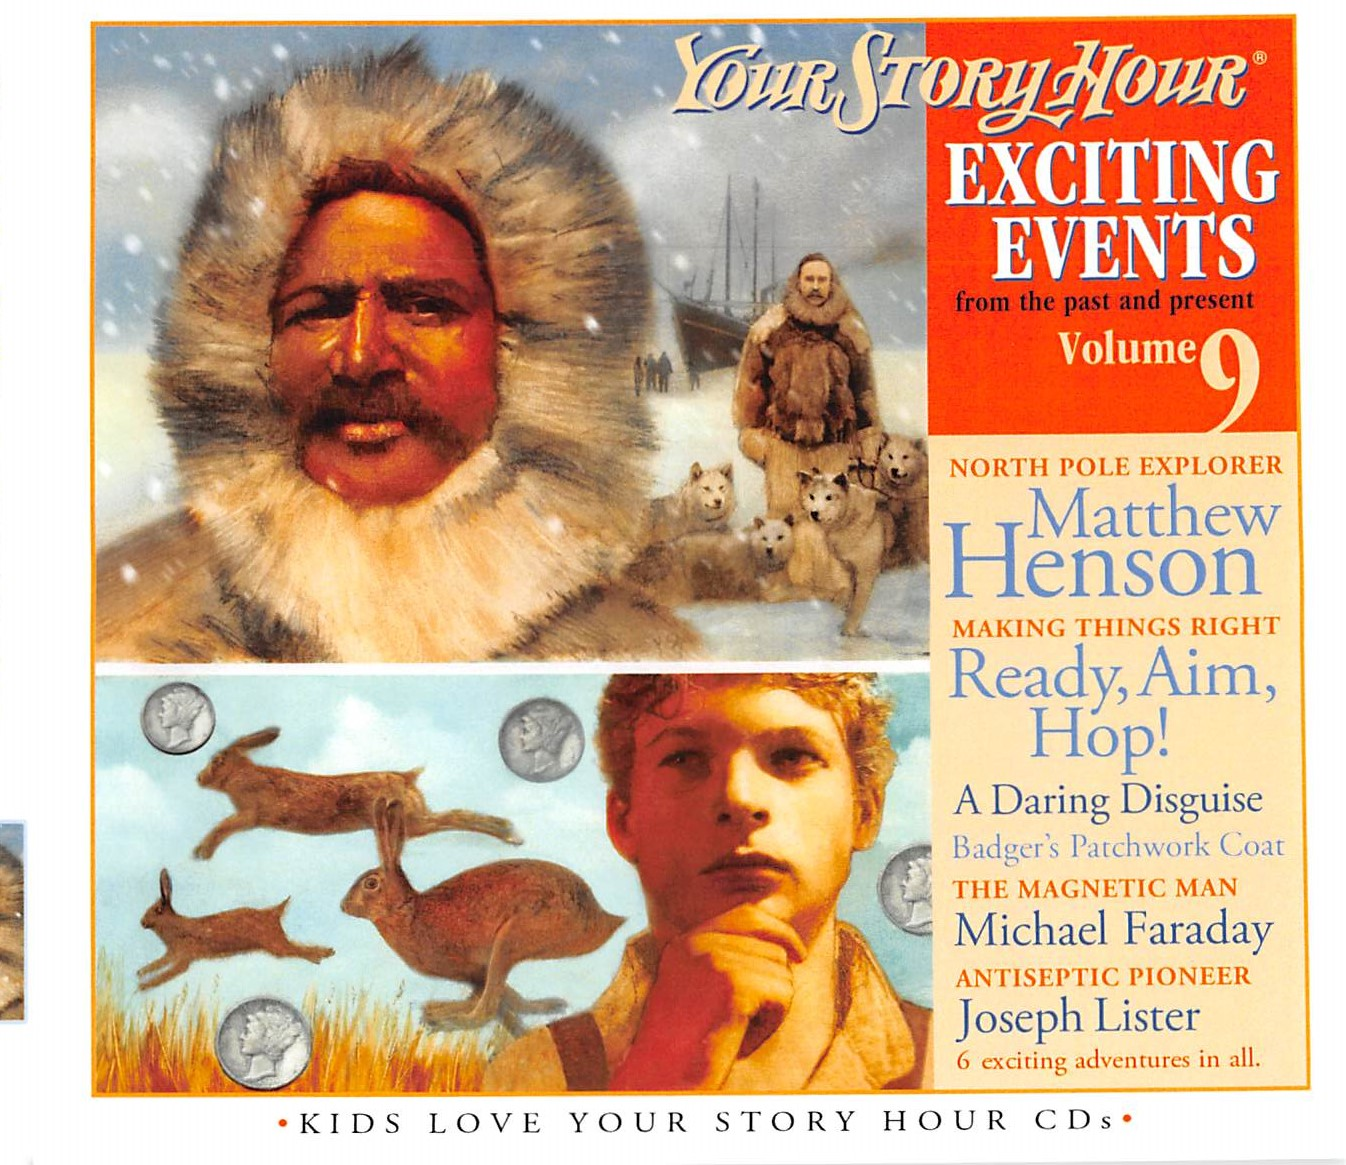 Your Story Hour Exciting Events - Volume 9